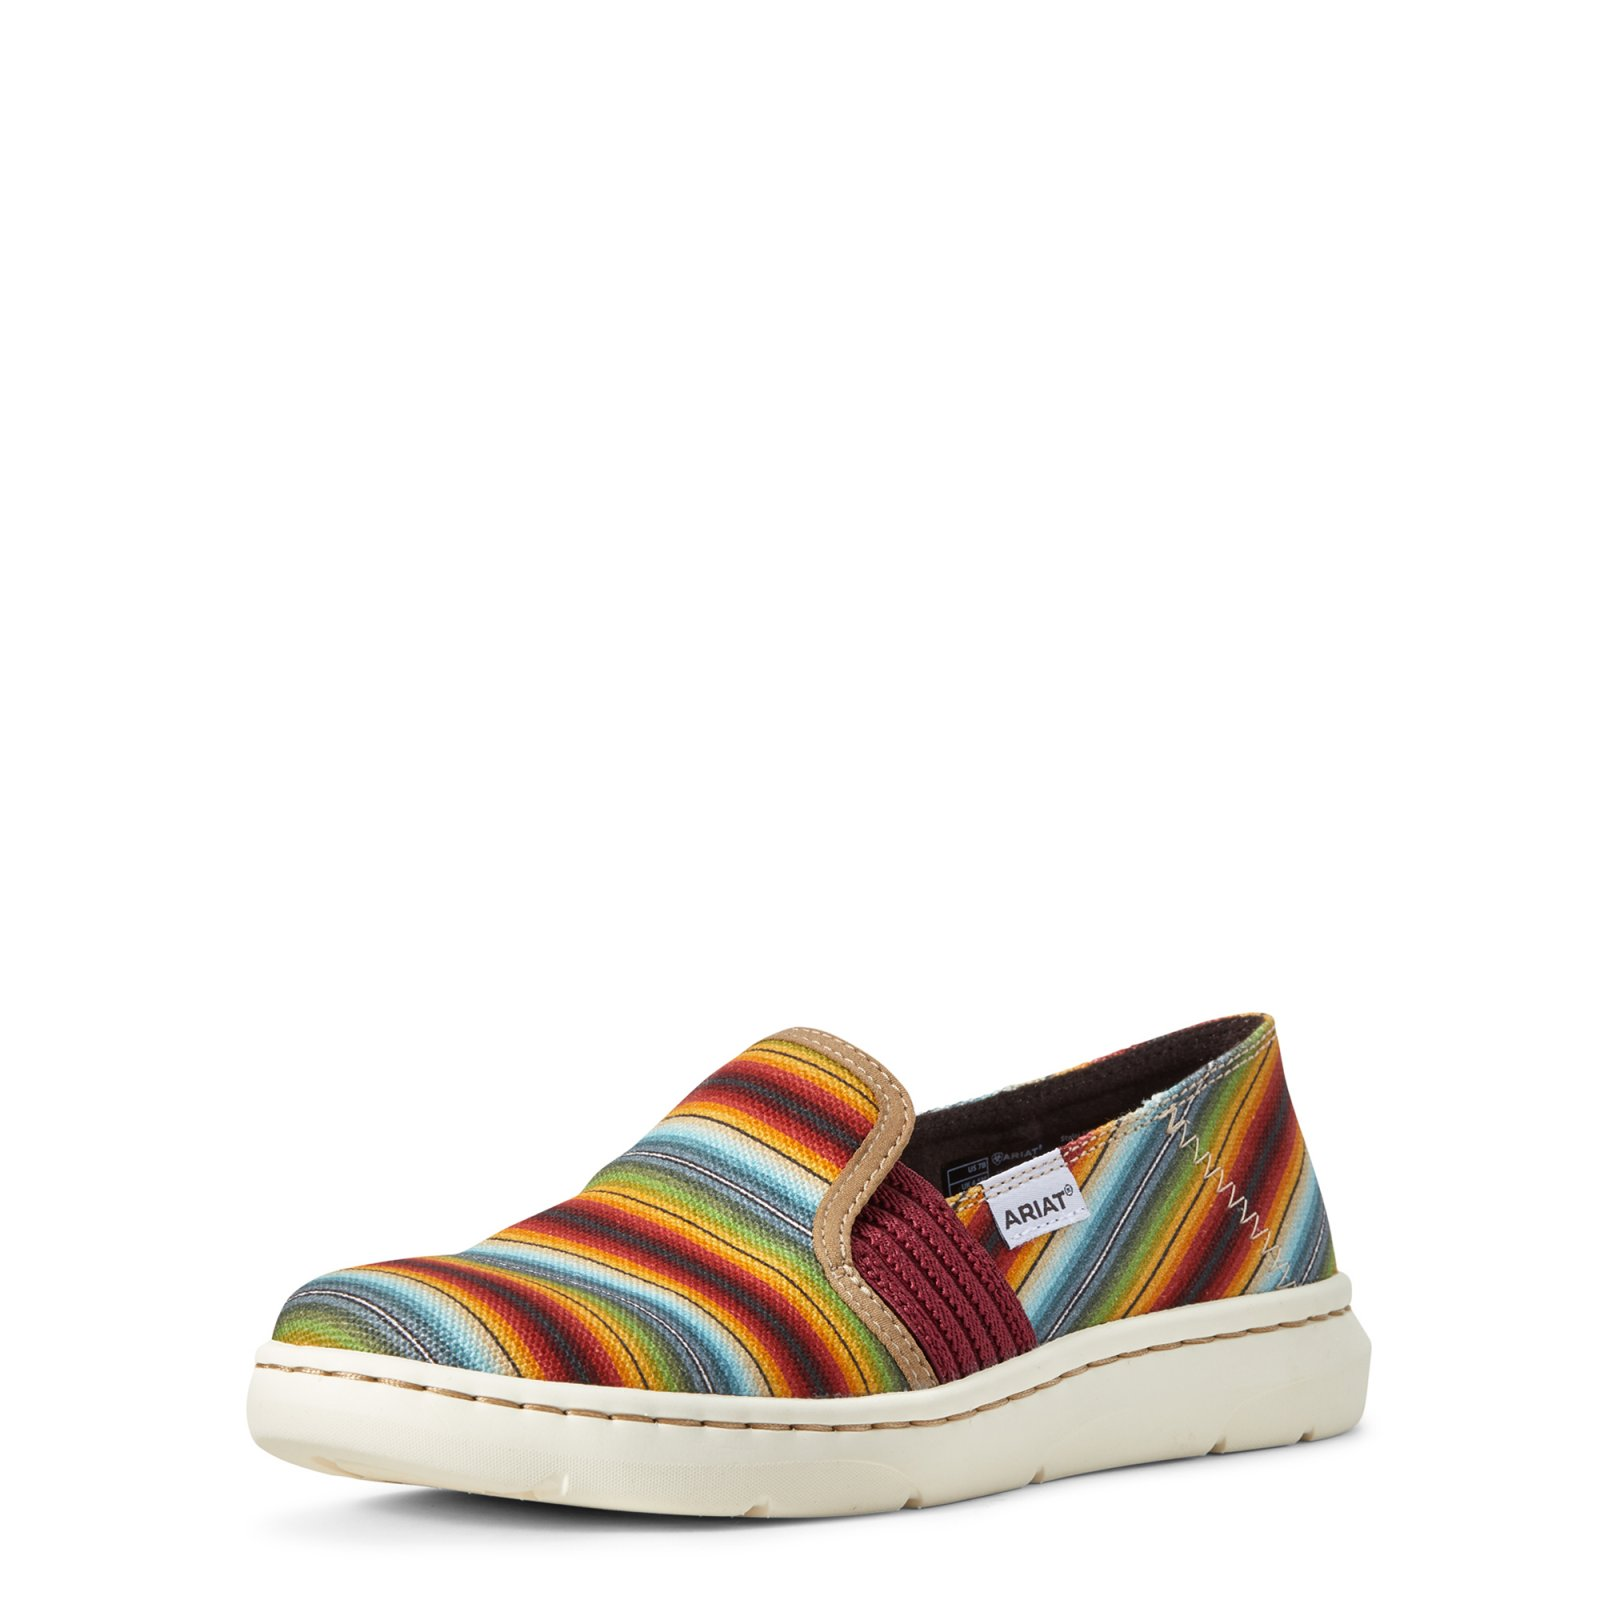 Ryder Old Muted Serape from Ariat